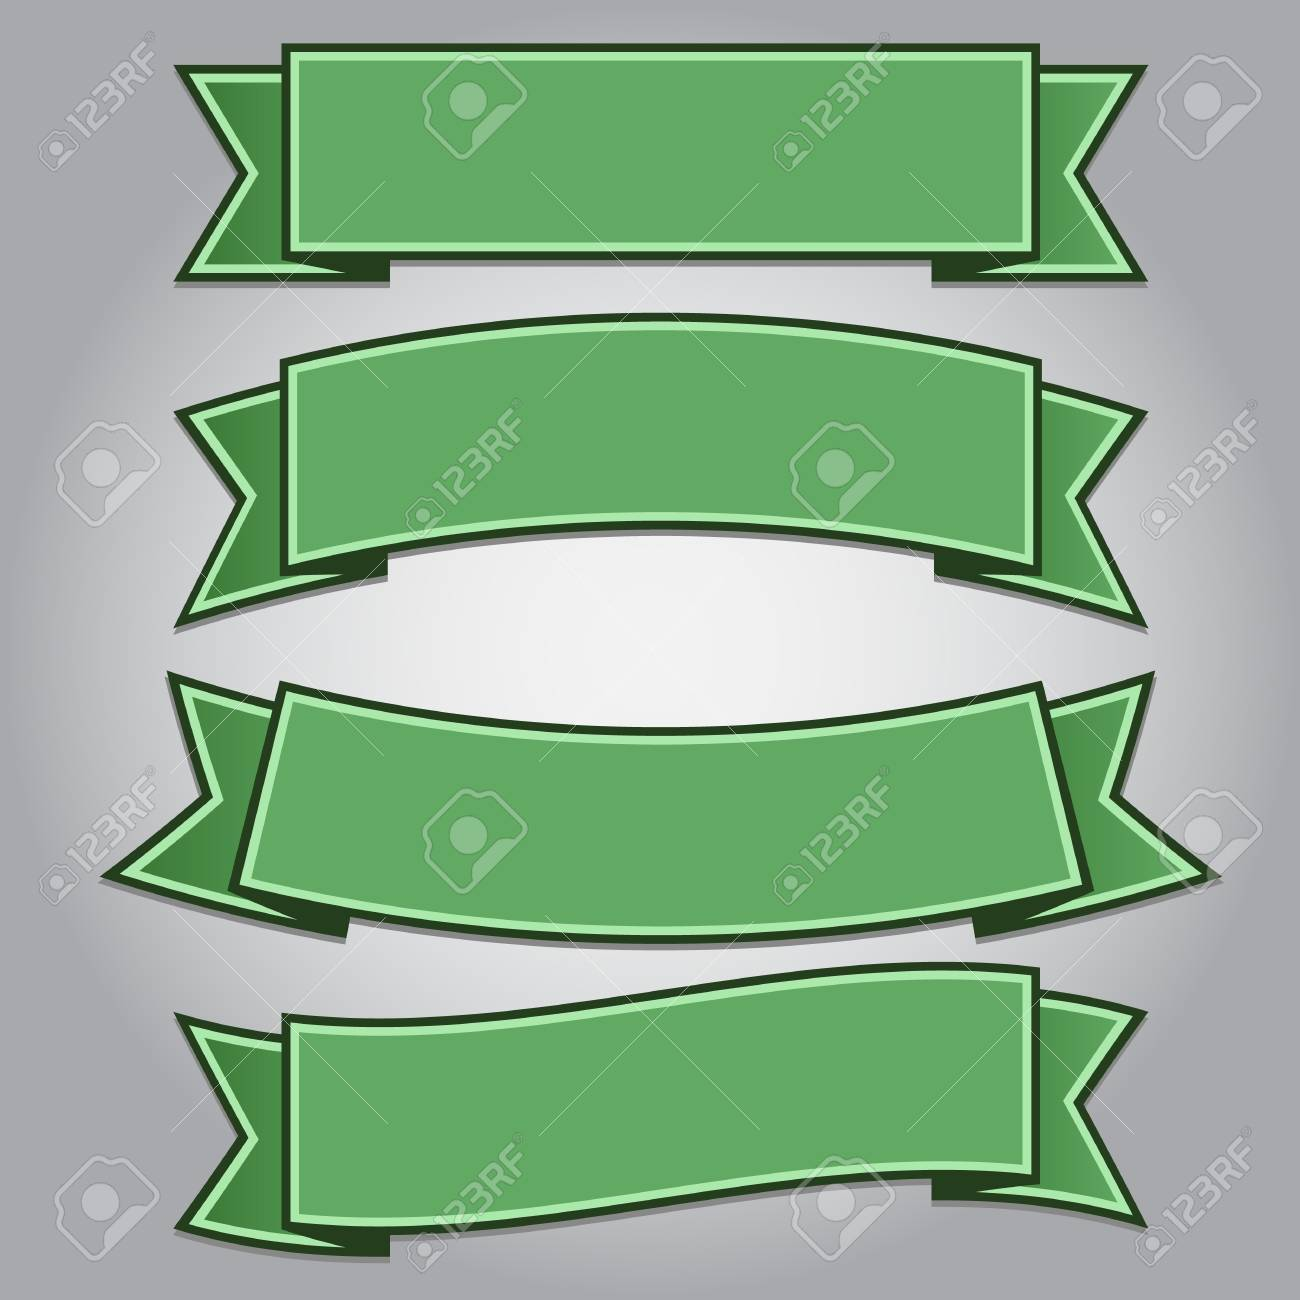 Set of green ribbon banners isolated,vector illustration Stock Vector - 17581090